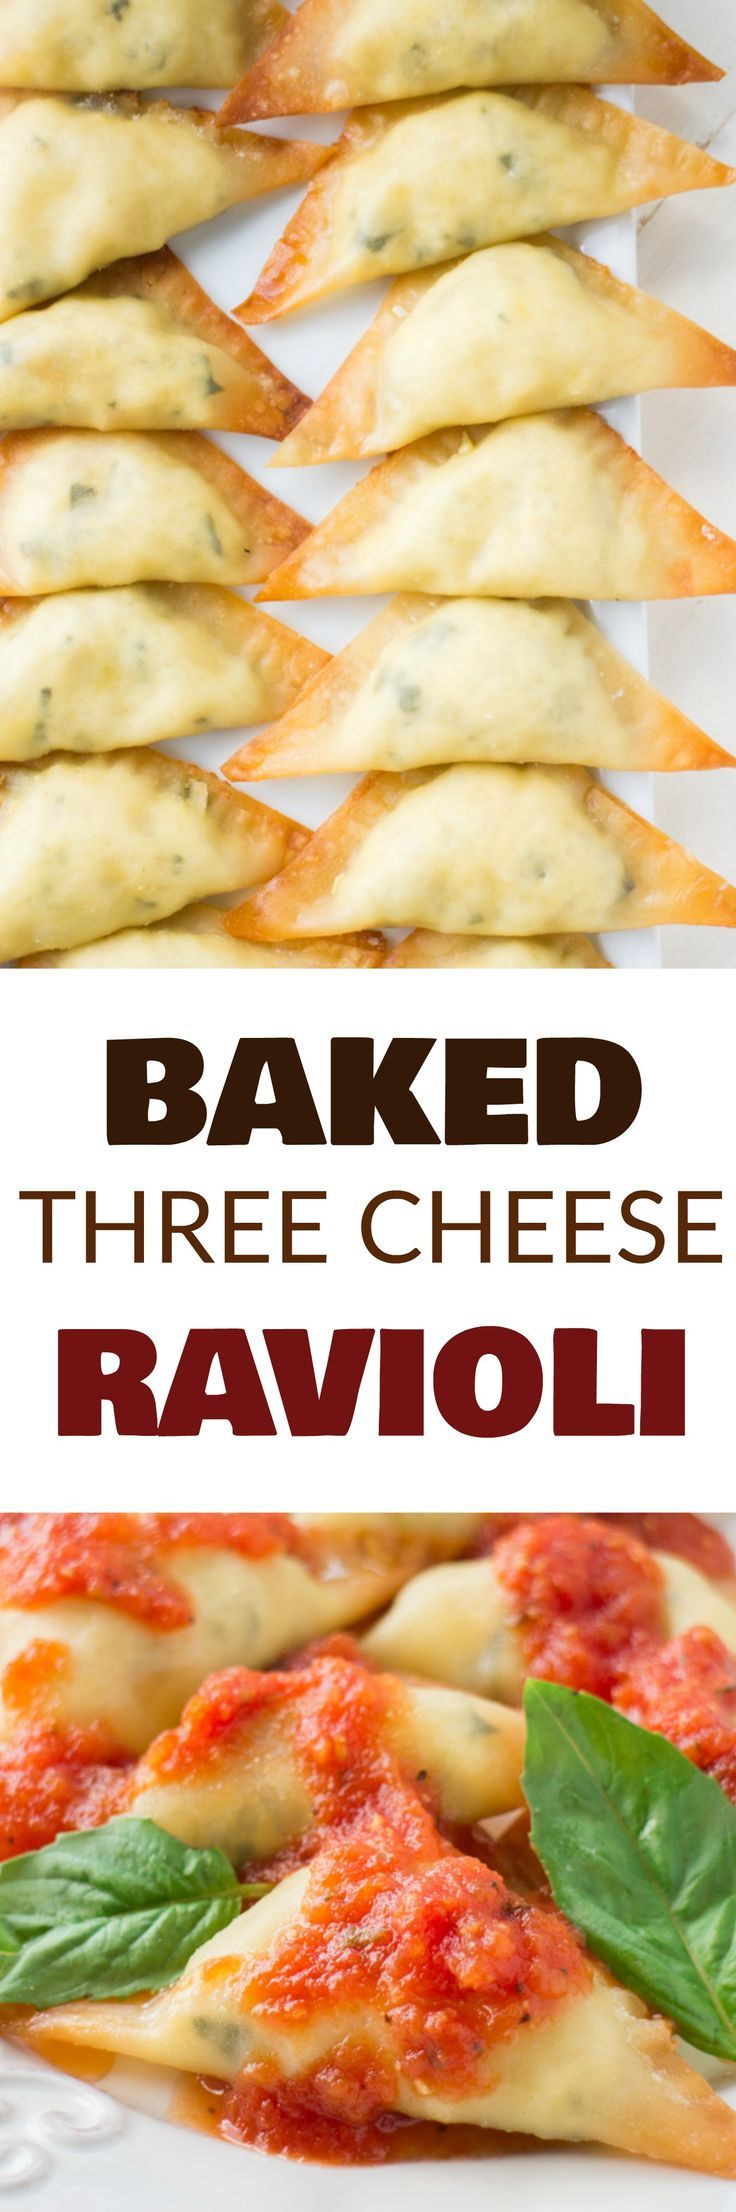 EASY BAKED Three Cheese Ravioli is one of my family's favorite meals! This homemade recipe uses wonton wrappers for the ravioli to make it faster and is filled with ricotta, mozzarella and Parmesan cheese! Instructions include how to make and bake immediately or freeze for frozen ravioli.